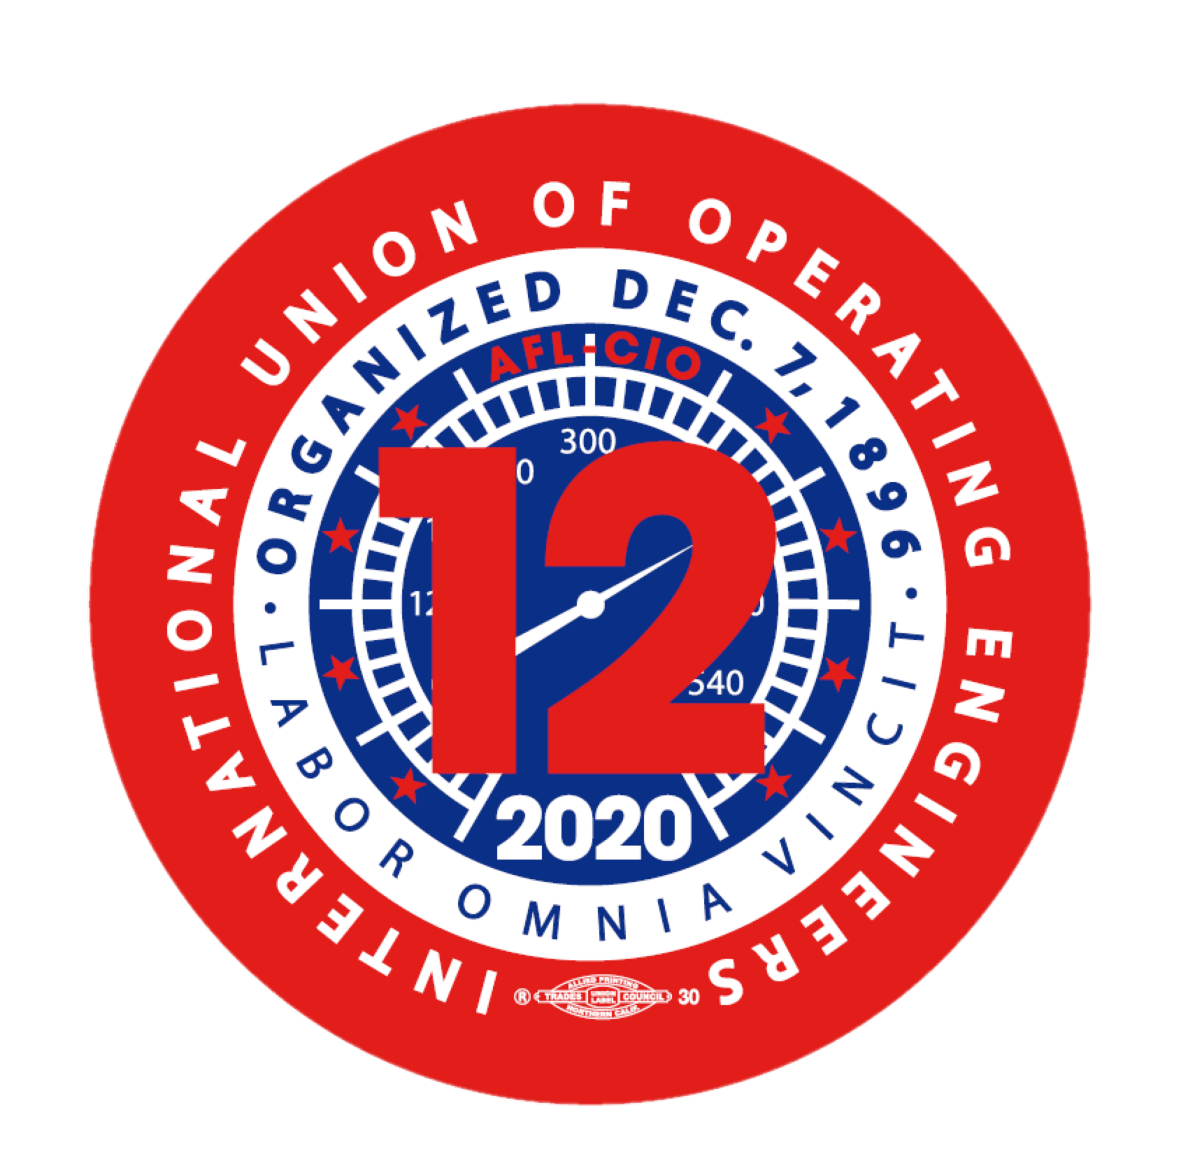 Local 12 logo, International Union of Operators and Engineers